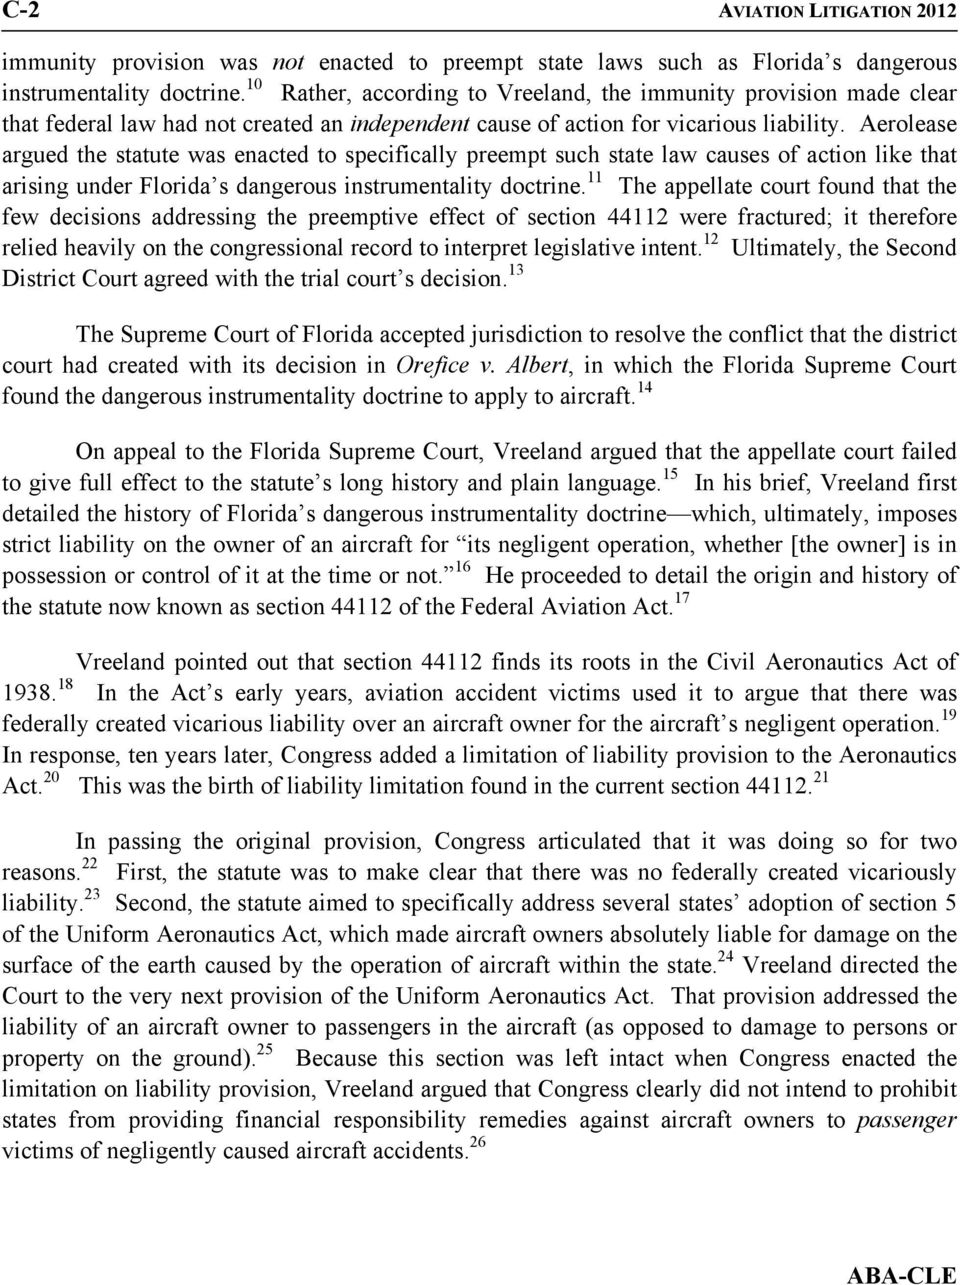 Aerolease argued the statute was enacted to specifically preempt such state law causes of action like that arising under Florida s dangerous instrumentality doctrine.